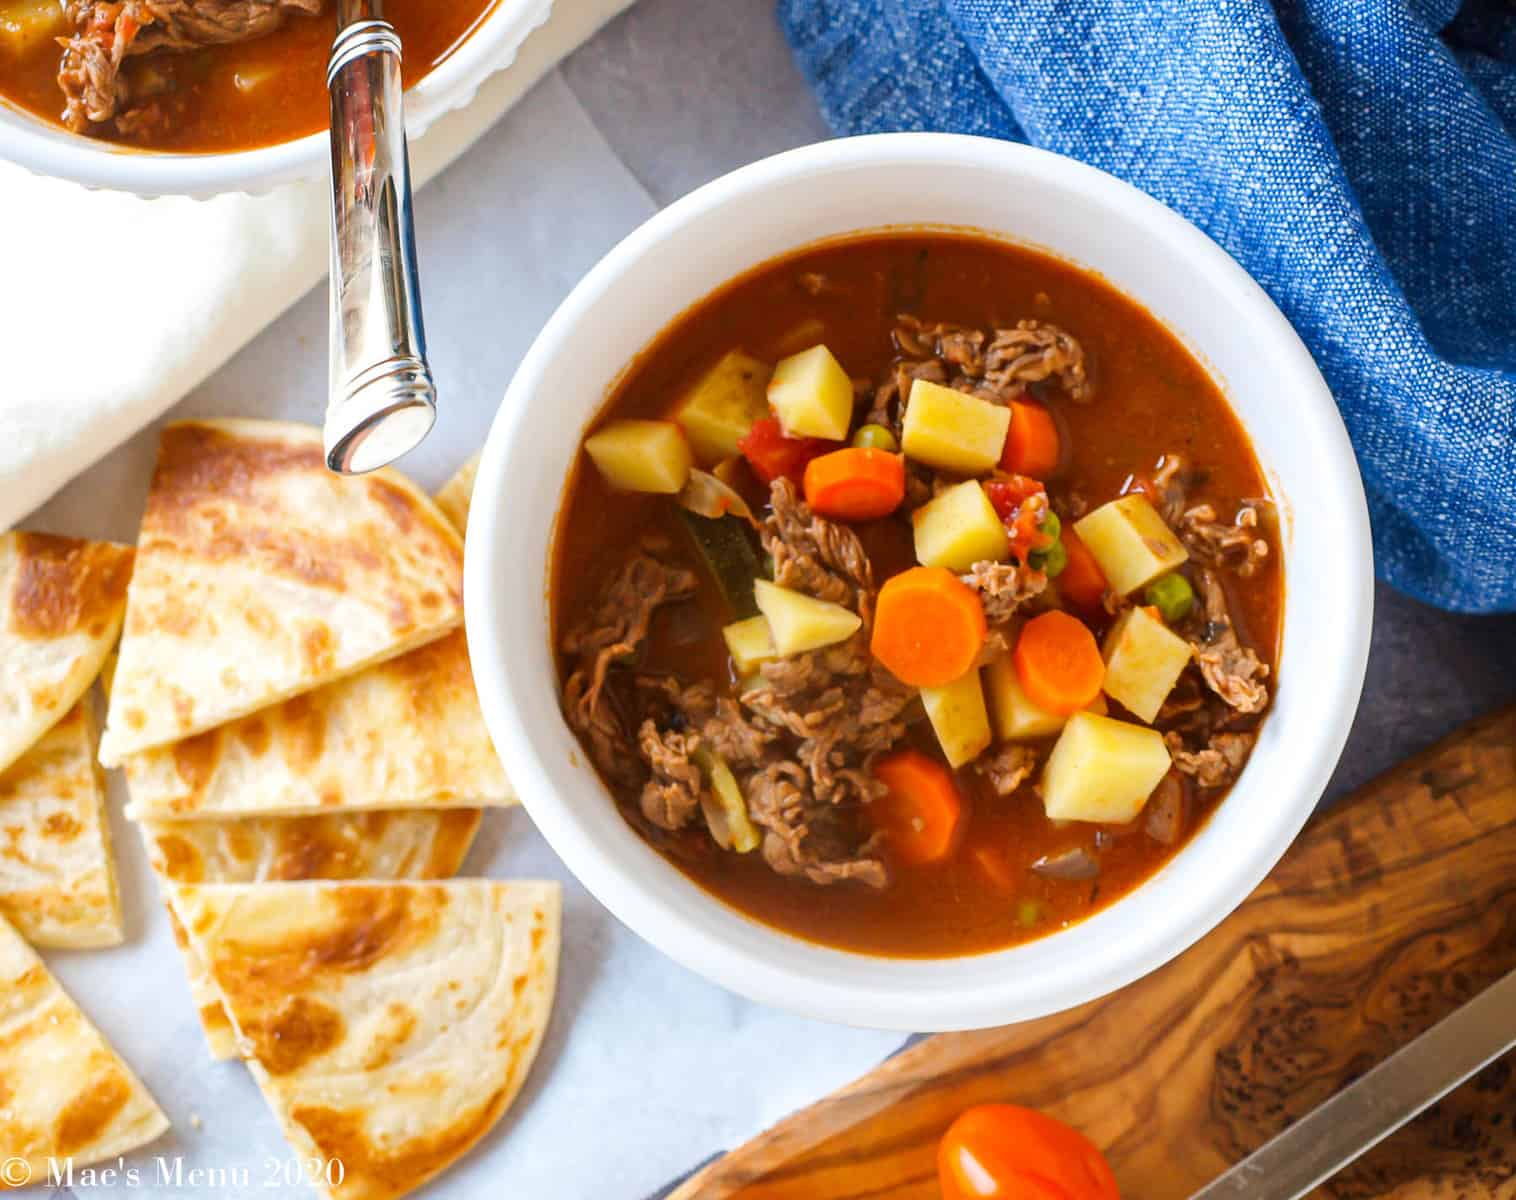 An overhead shot of a bowl of steak soup next to pita pieces, baby tomatoes, and tea towels